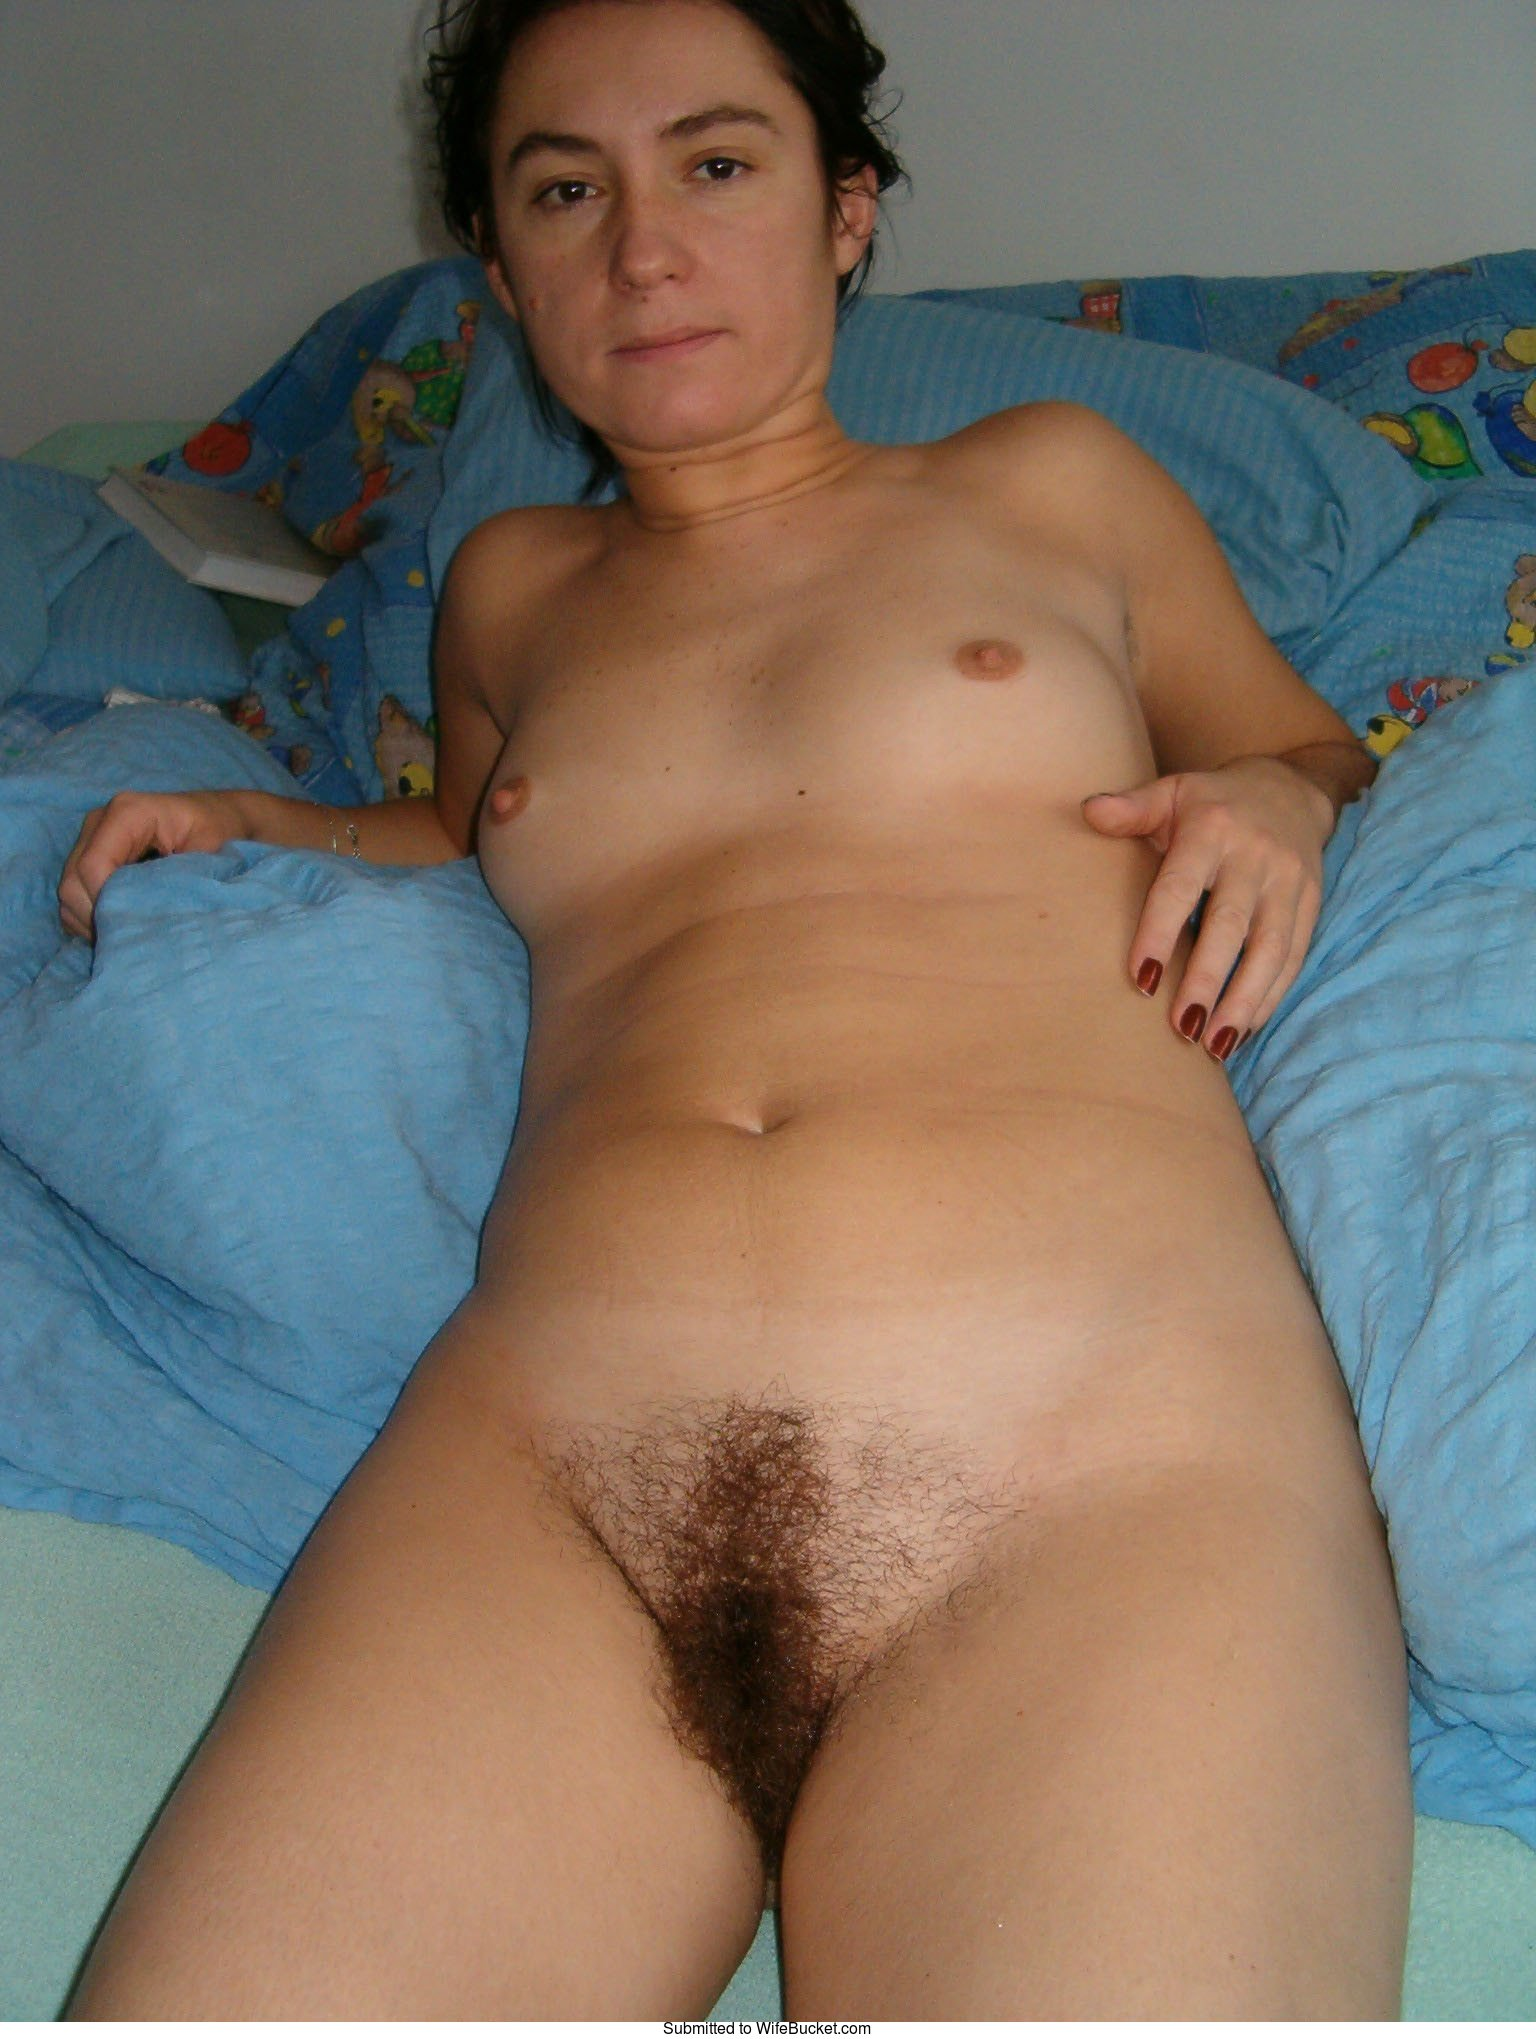 Full frontal hairy pussy amateur